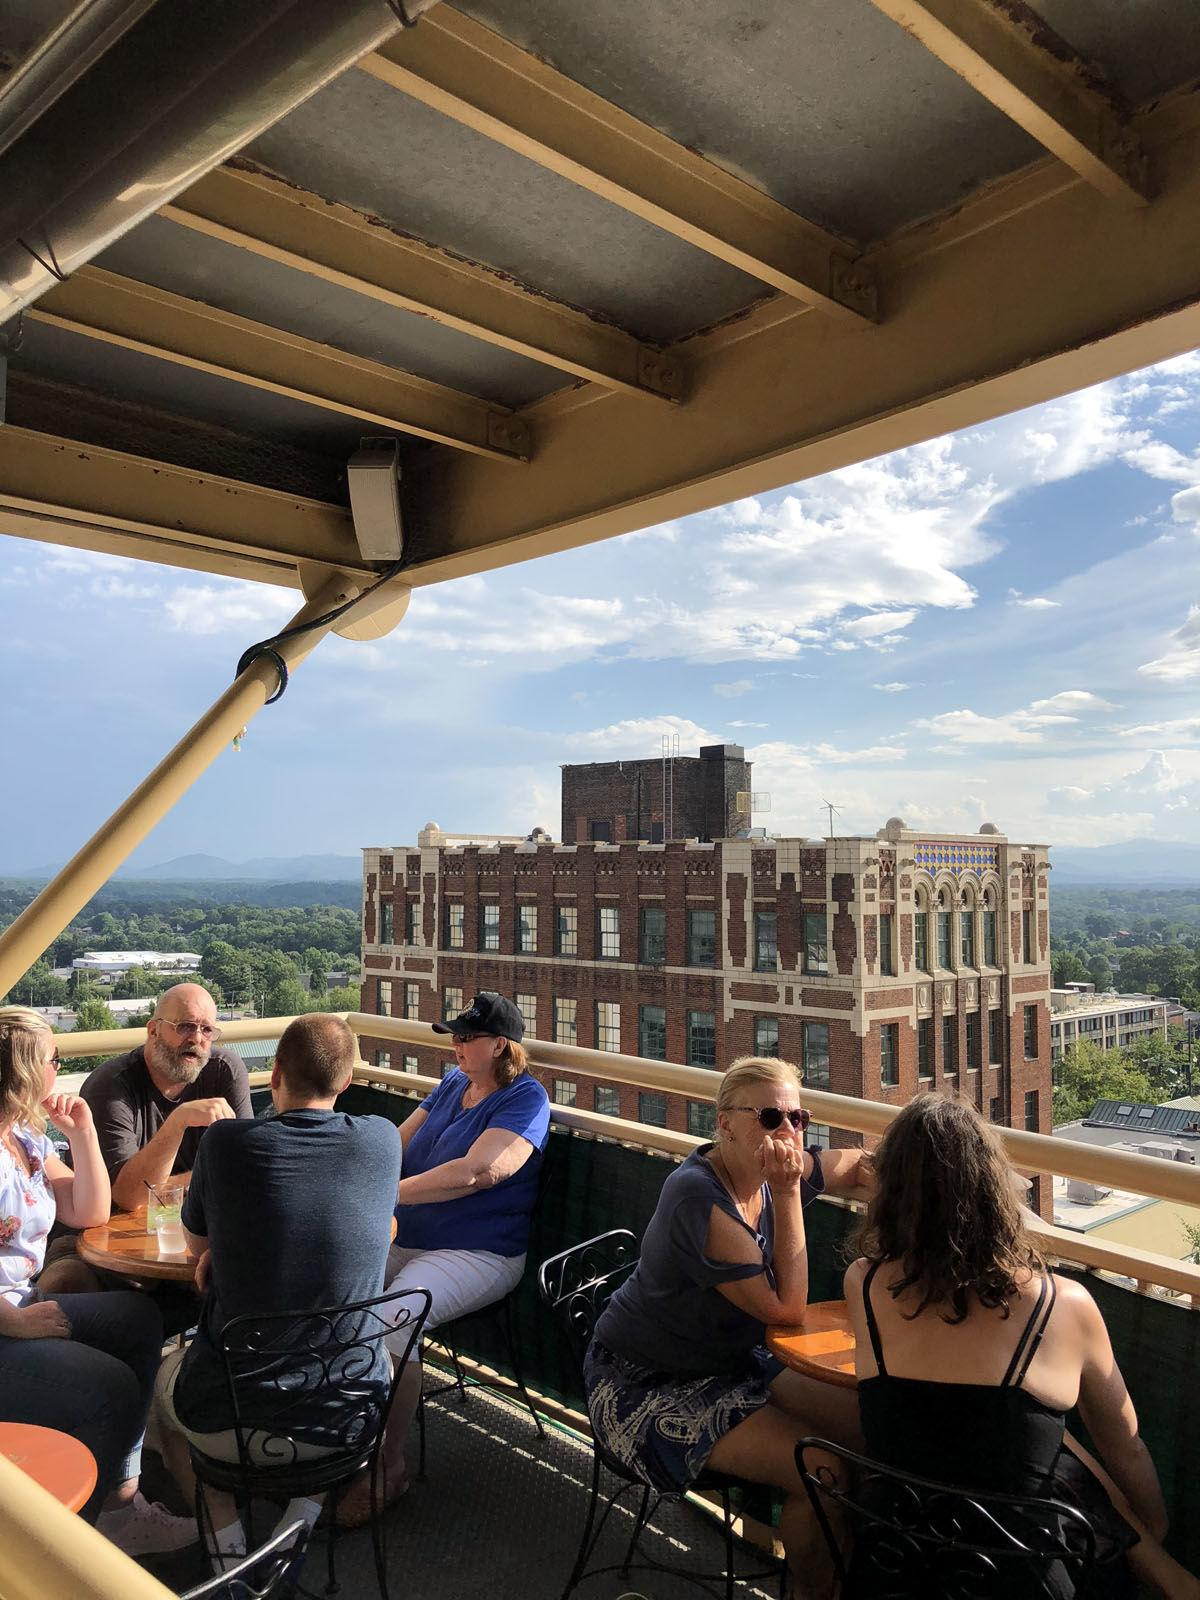 Out for delivery: Former Marion mail carrier runs rooftop bar tours